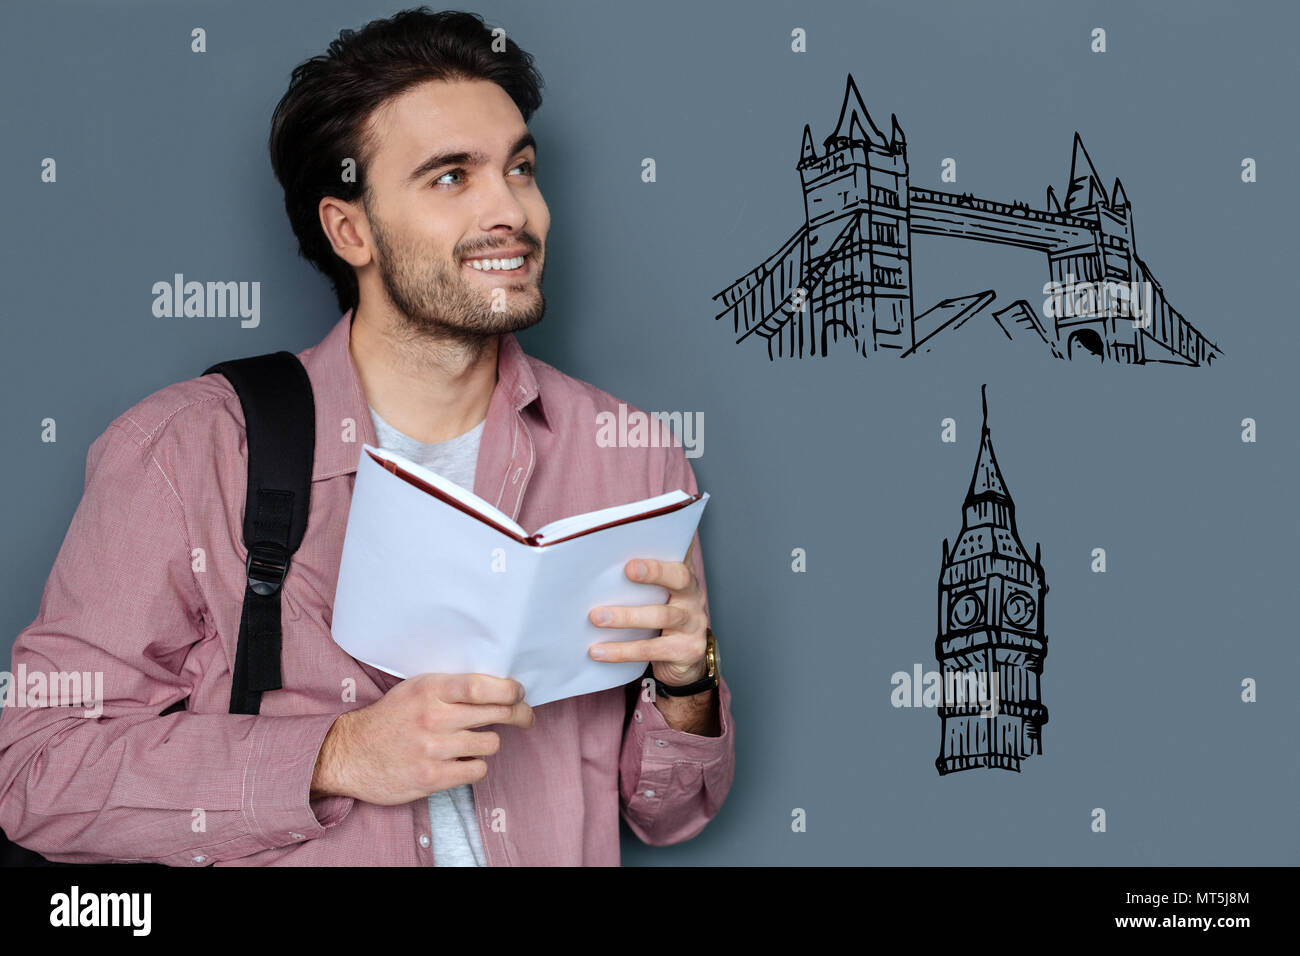 Smiling guide holding a book while talking about London - Stock Image